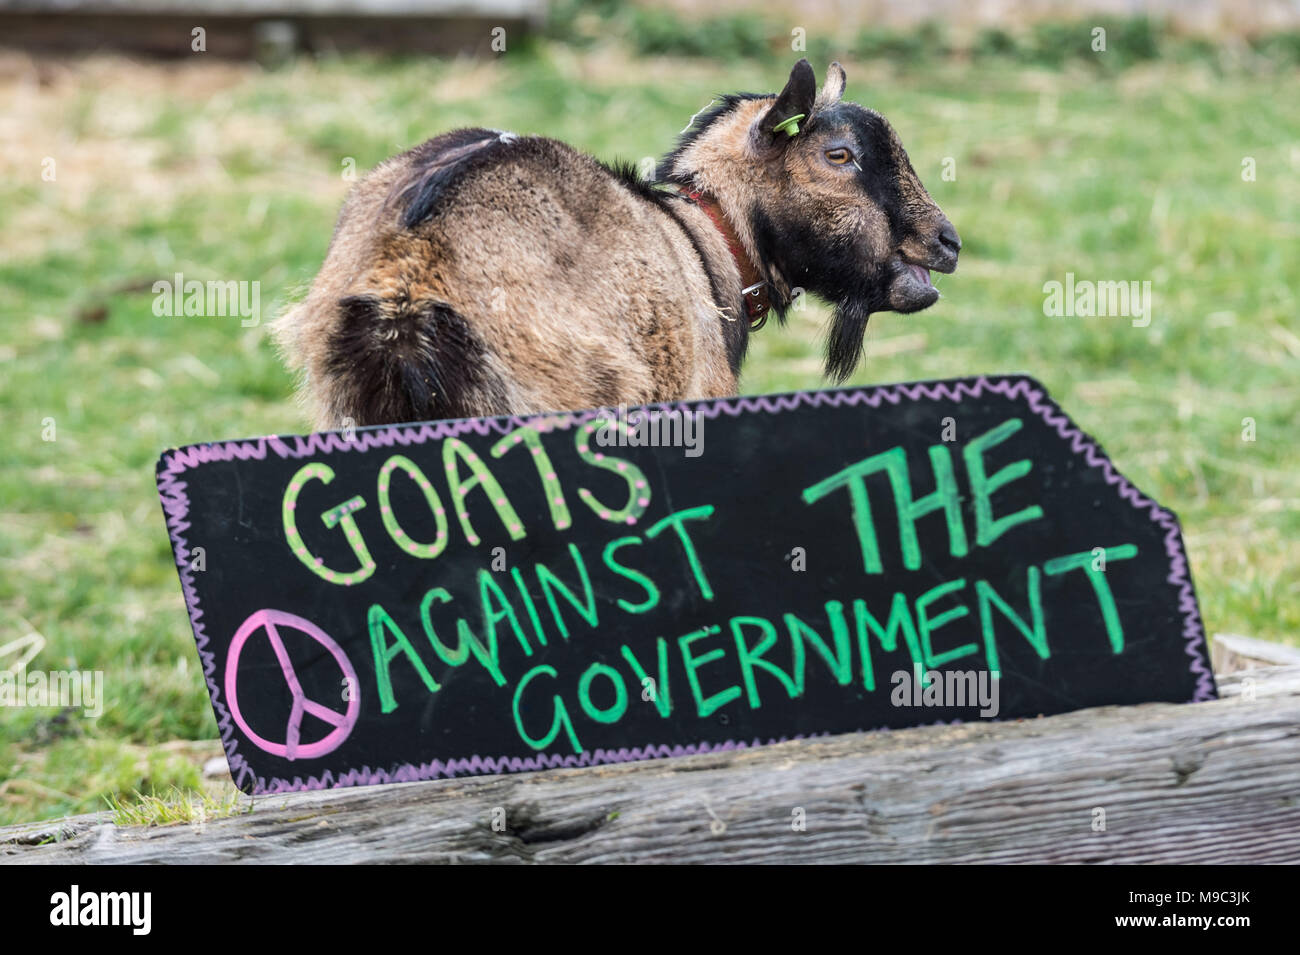 London, UK. 24th March, 2018. 10th Annual Oxford vs Cambridge Goat Race at Spitalfields City Farm. Credit: Guy Corbishley/Alamy Live News - Stock Image